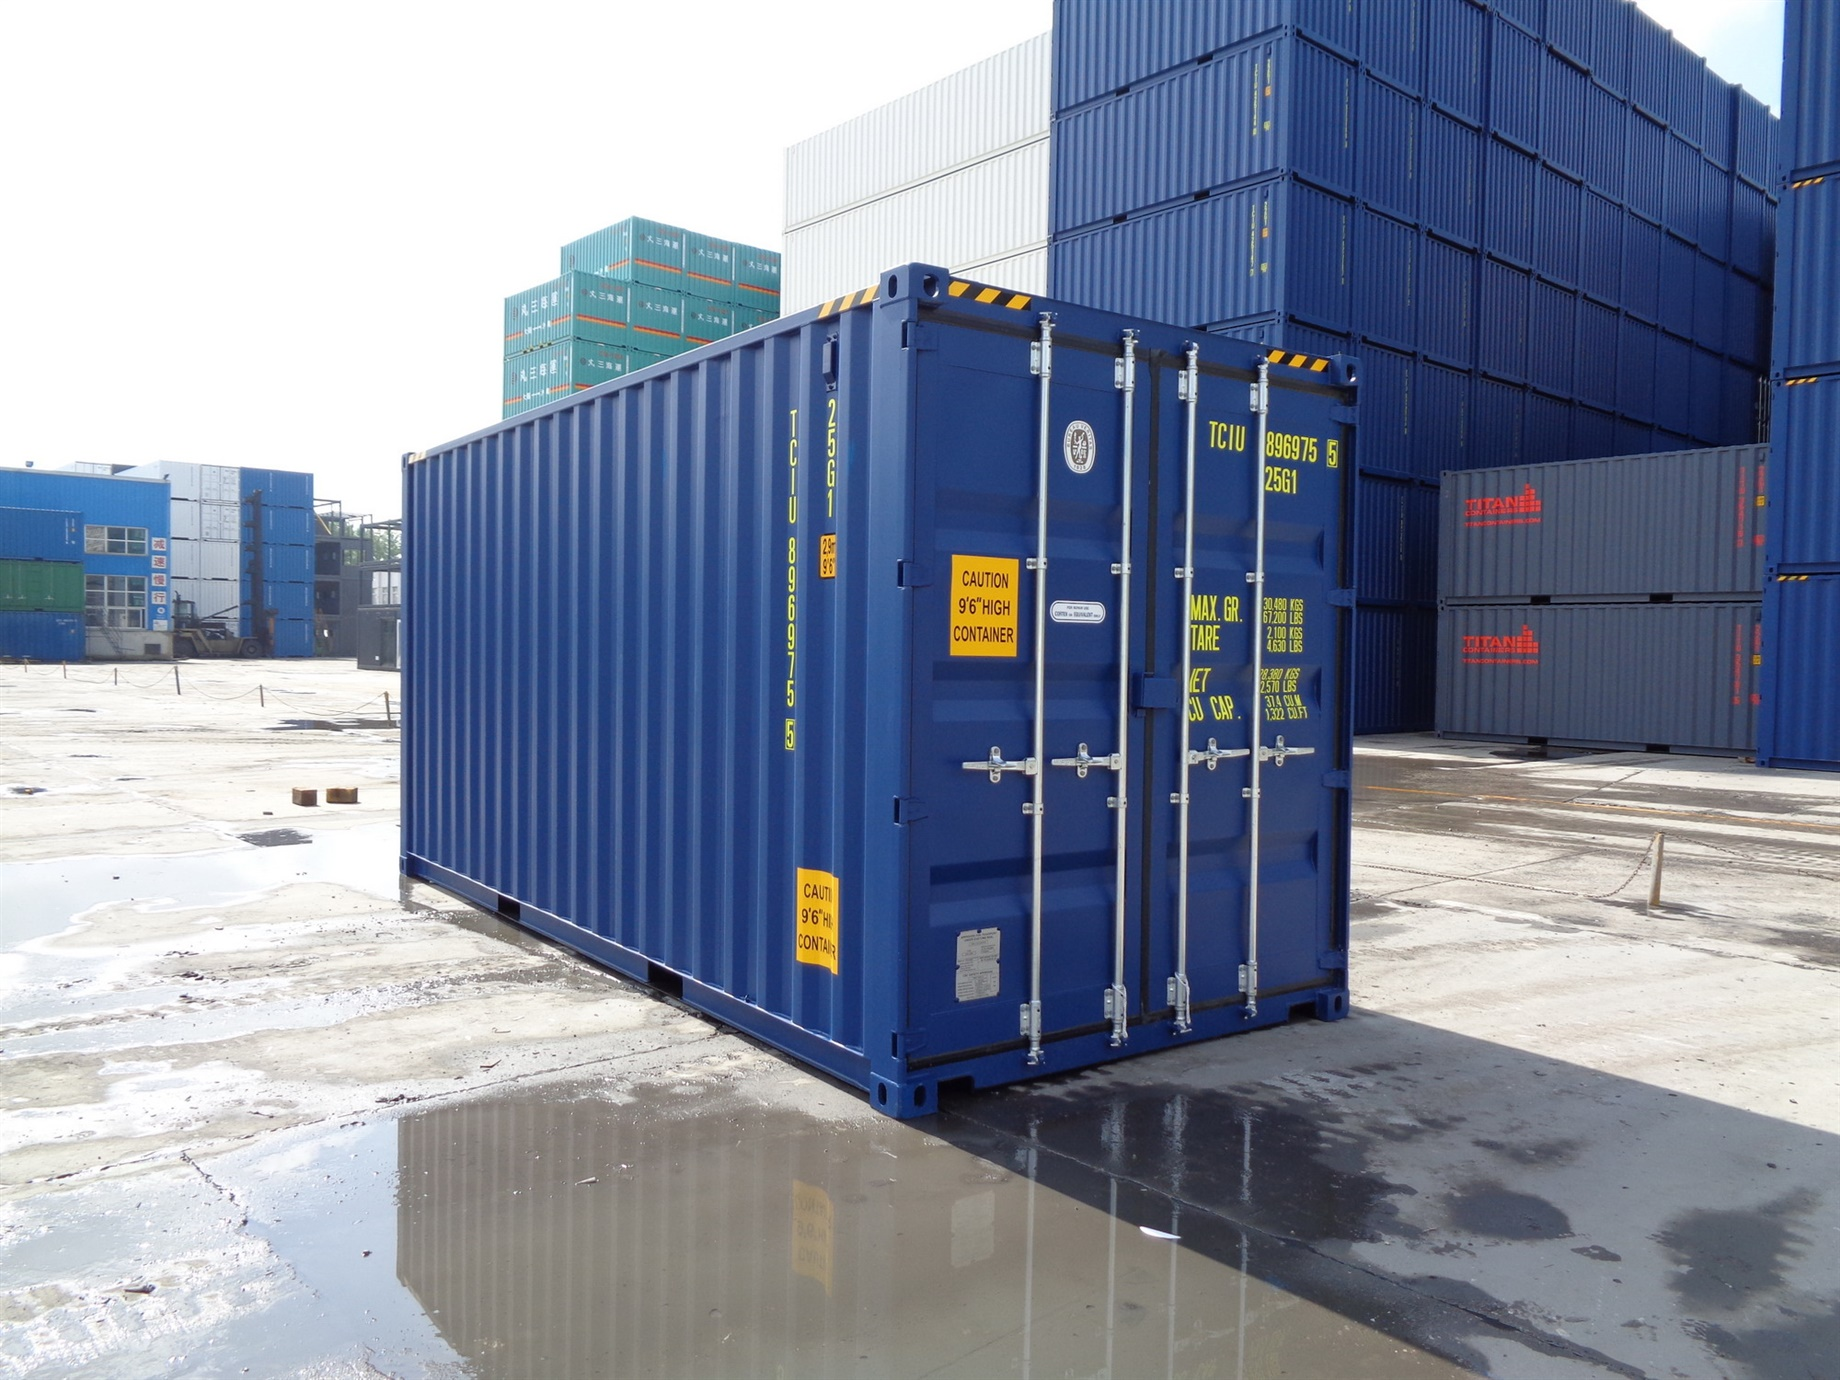 20 foot HC blue storage container titan containers